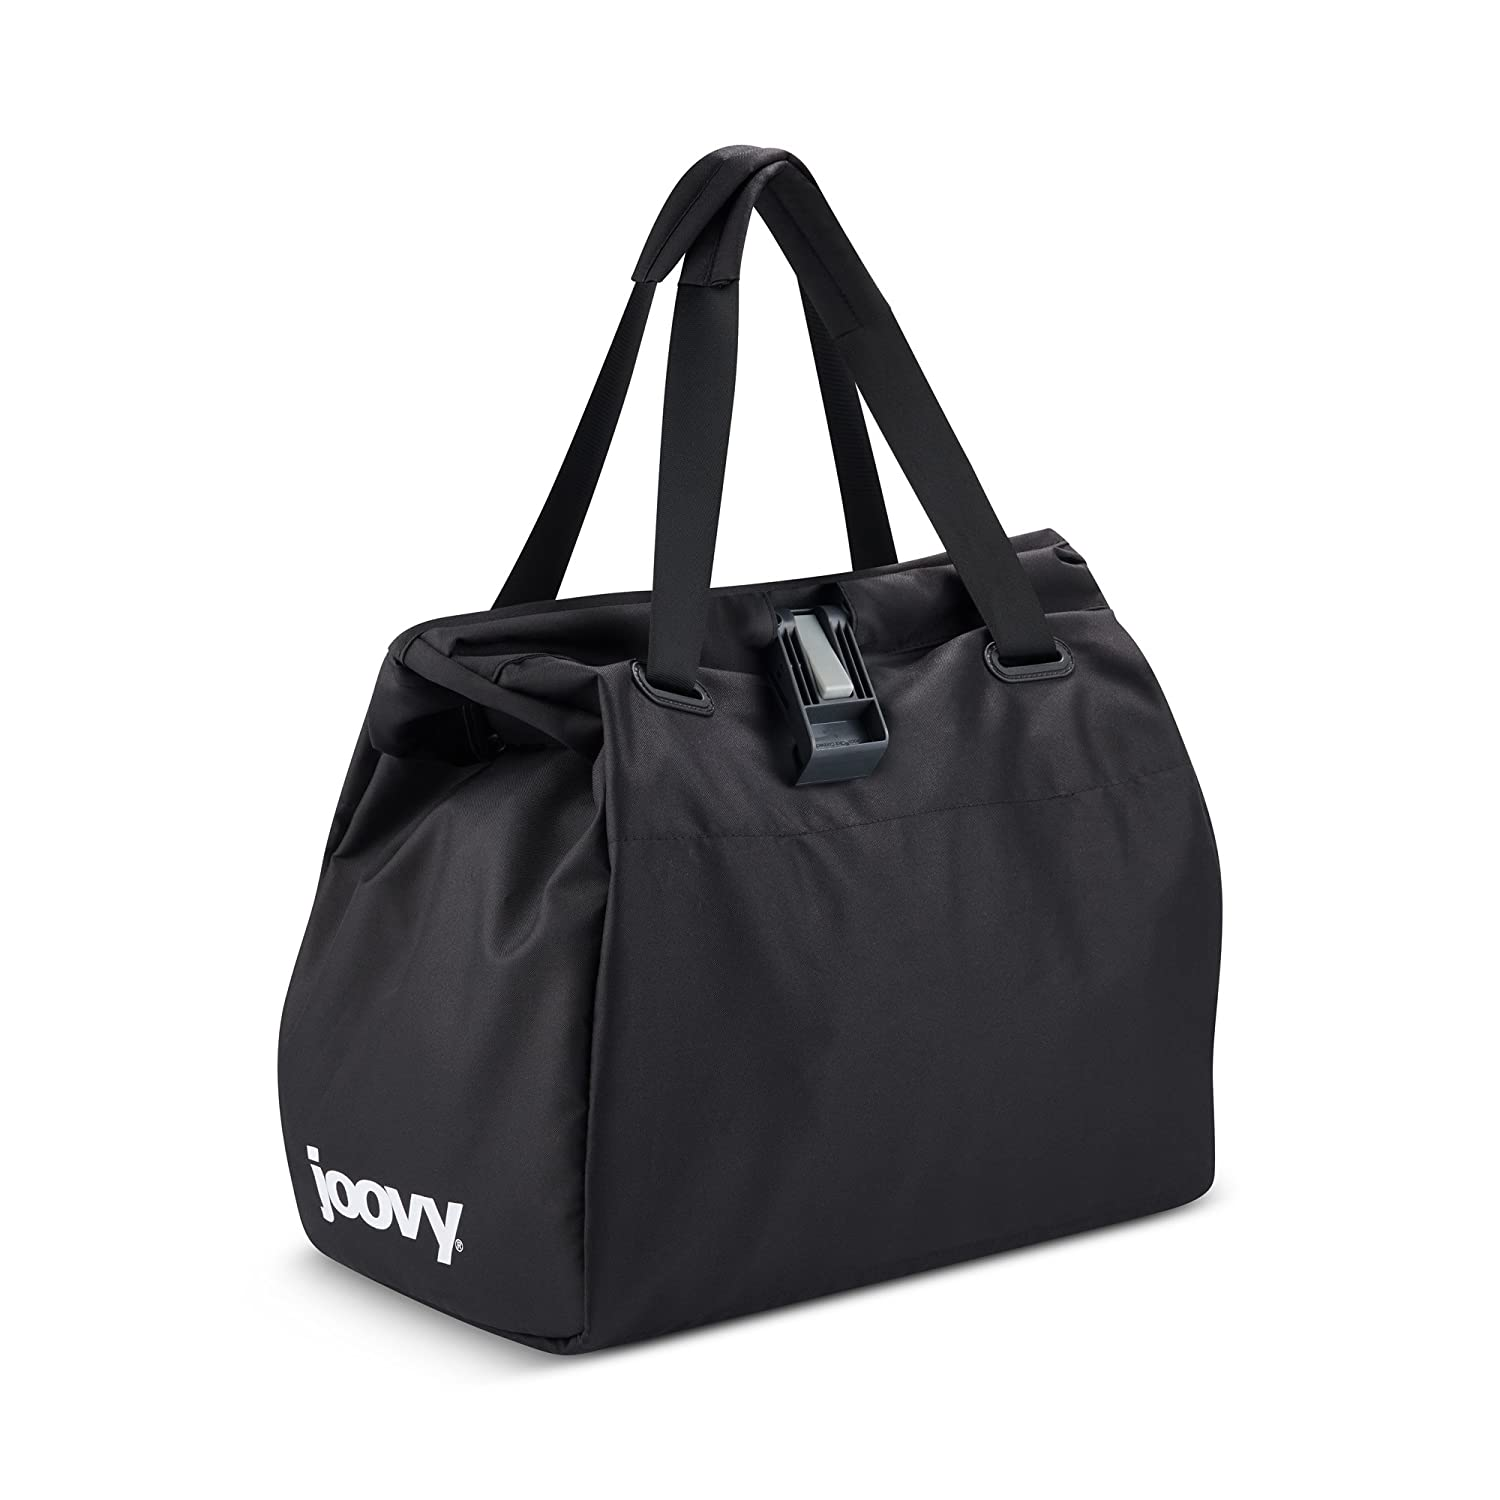 JOOVY Caboose S Baby Stroller Travel Tote Bags